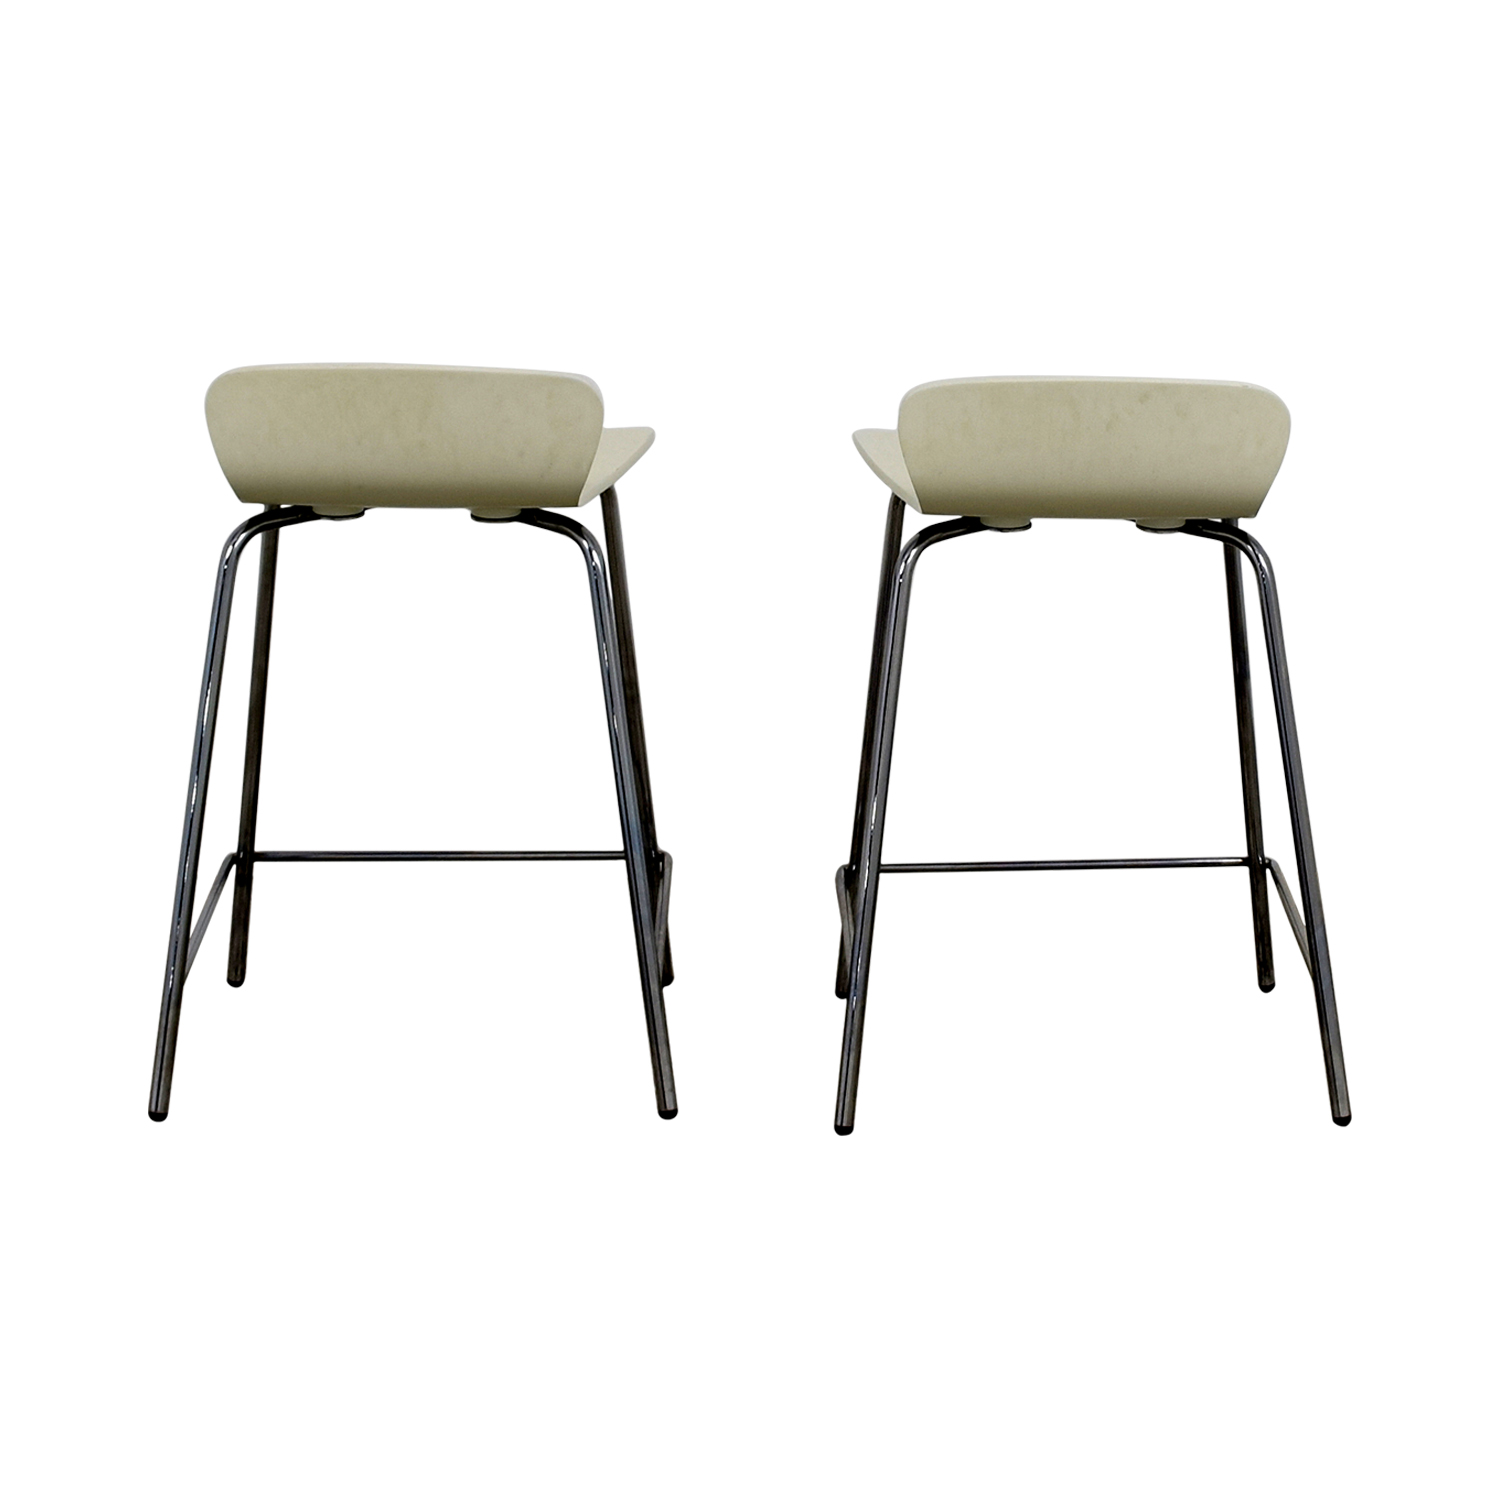 Crate & Barrel Crate & Barrel Felix White Counter Stools for sale